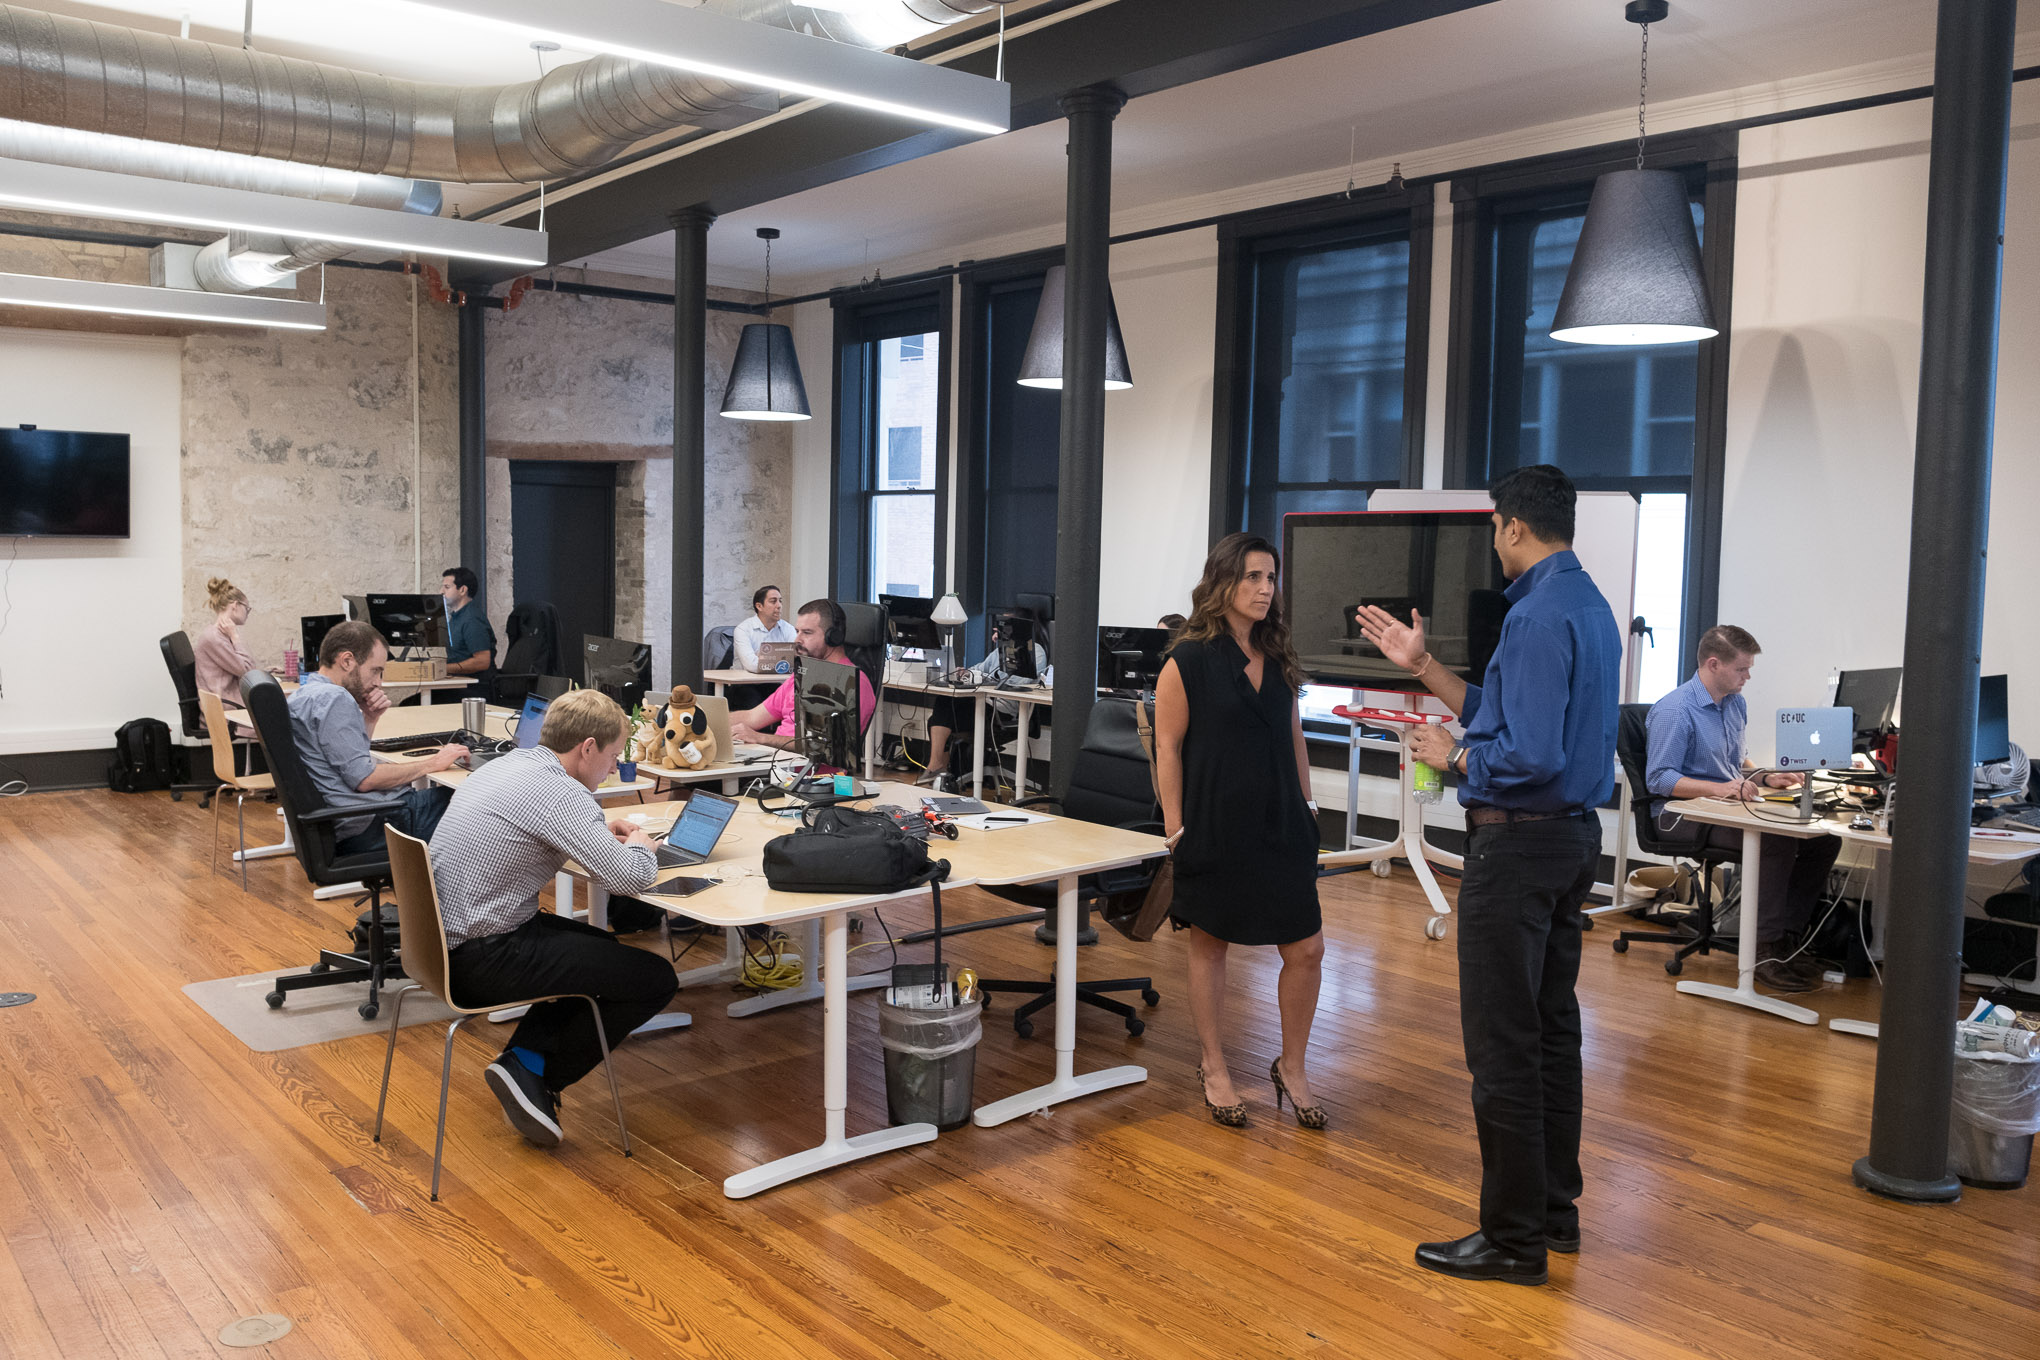 Scaleworks employees work in a large open-air office space renovated at the Savoy building.